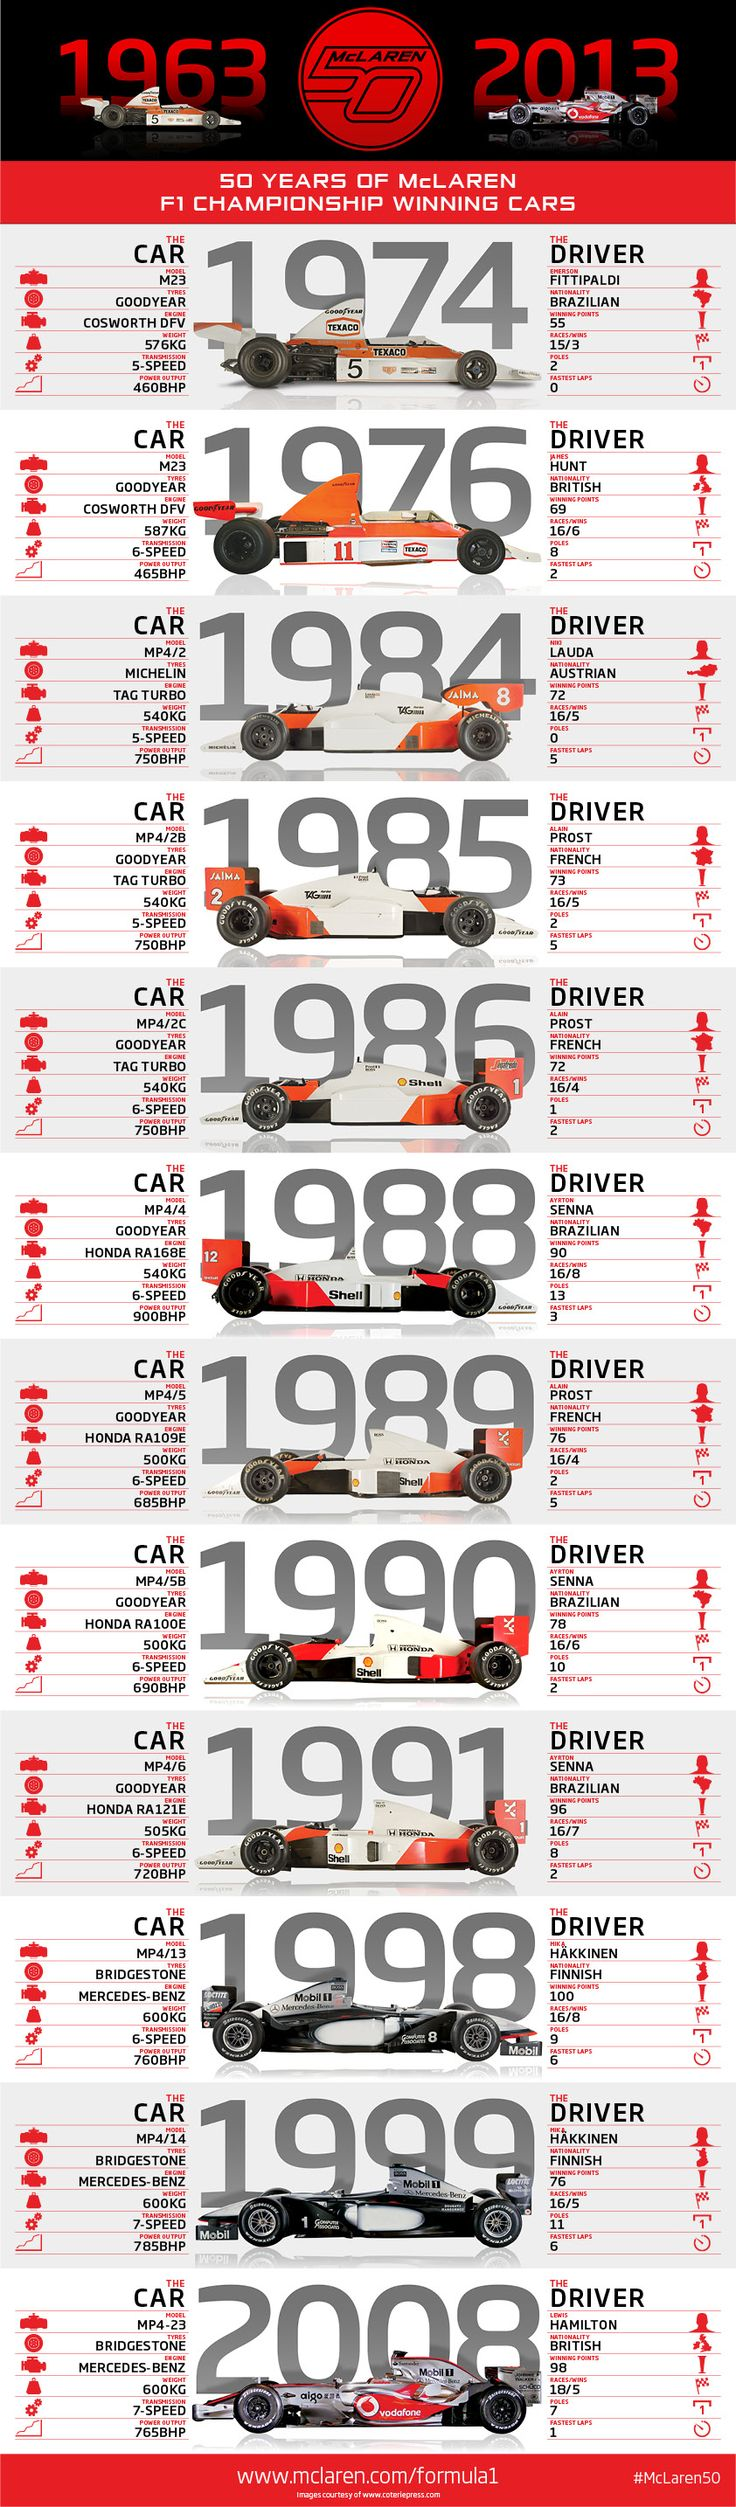 50 years of McLaren F1 championship winning cars